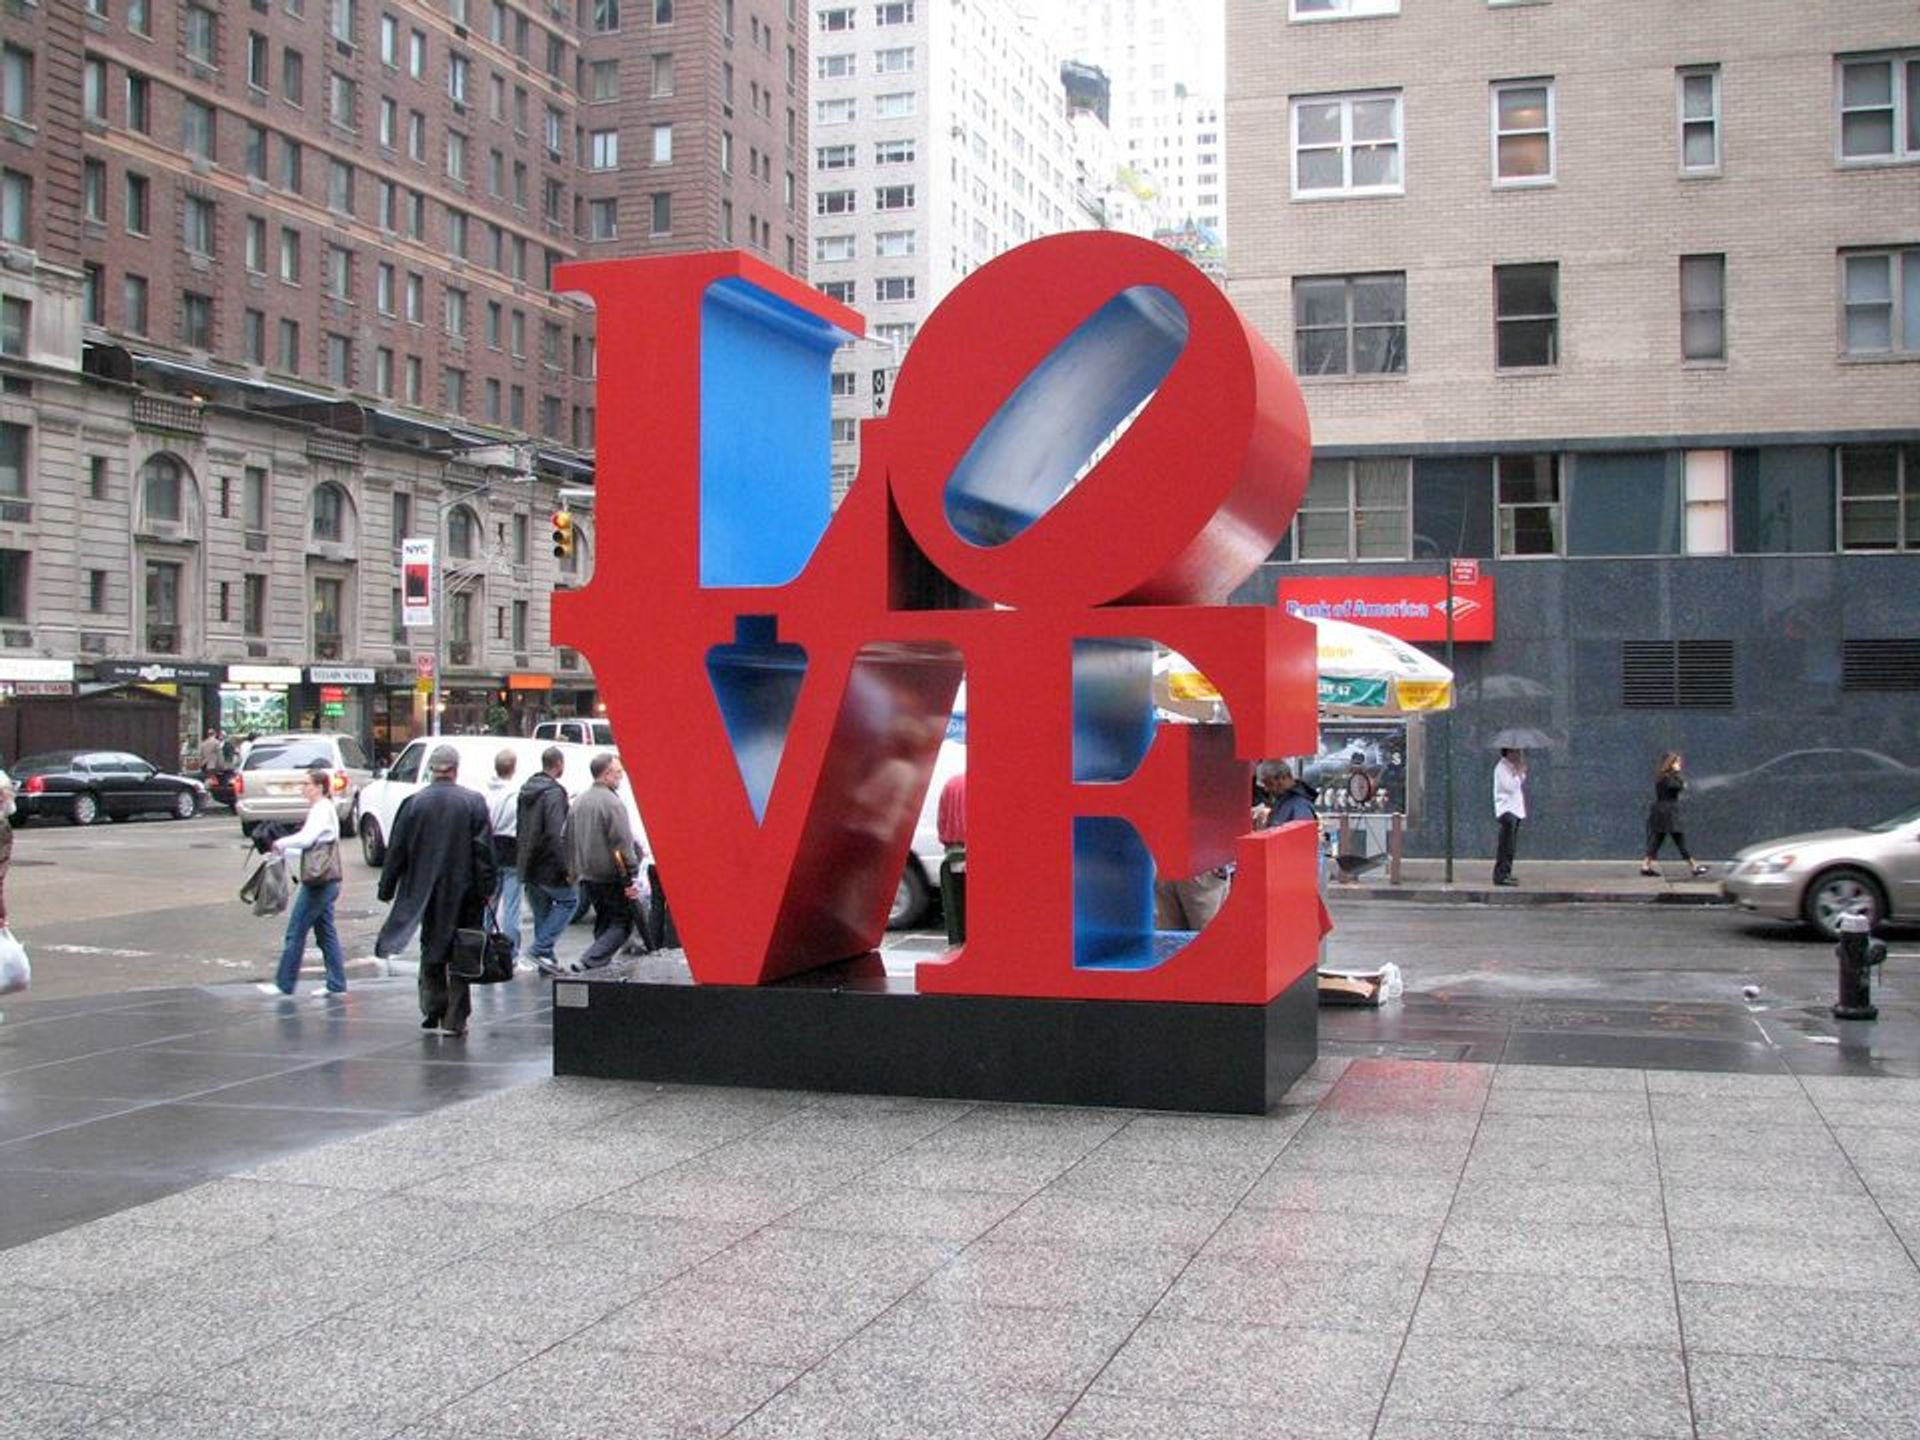 LOVE sculpture by Robert Indiana, on the corner of 6th Avenue and 55th Street in New York.